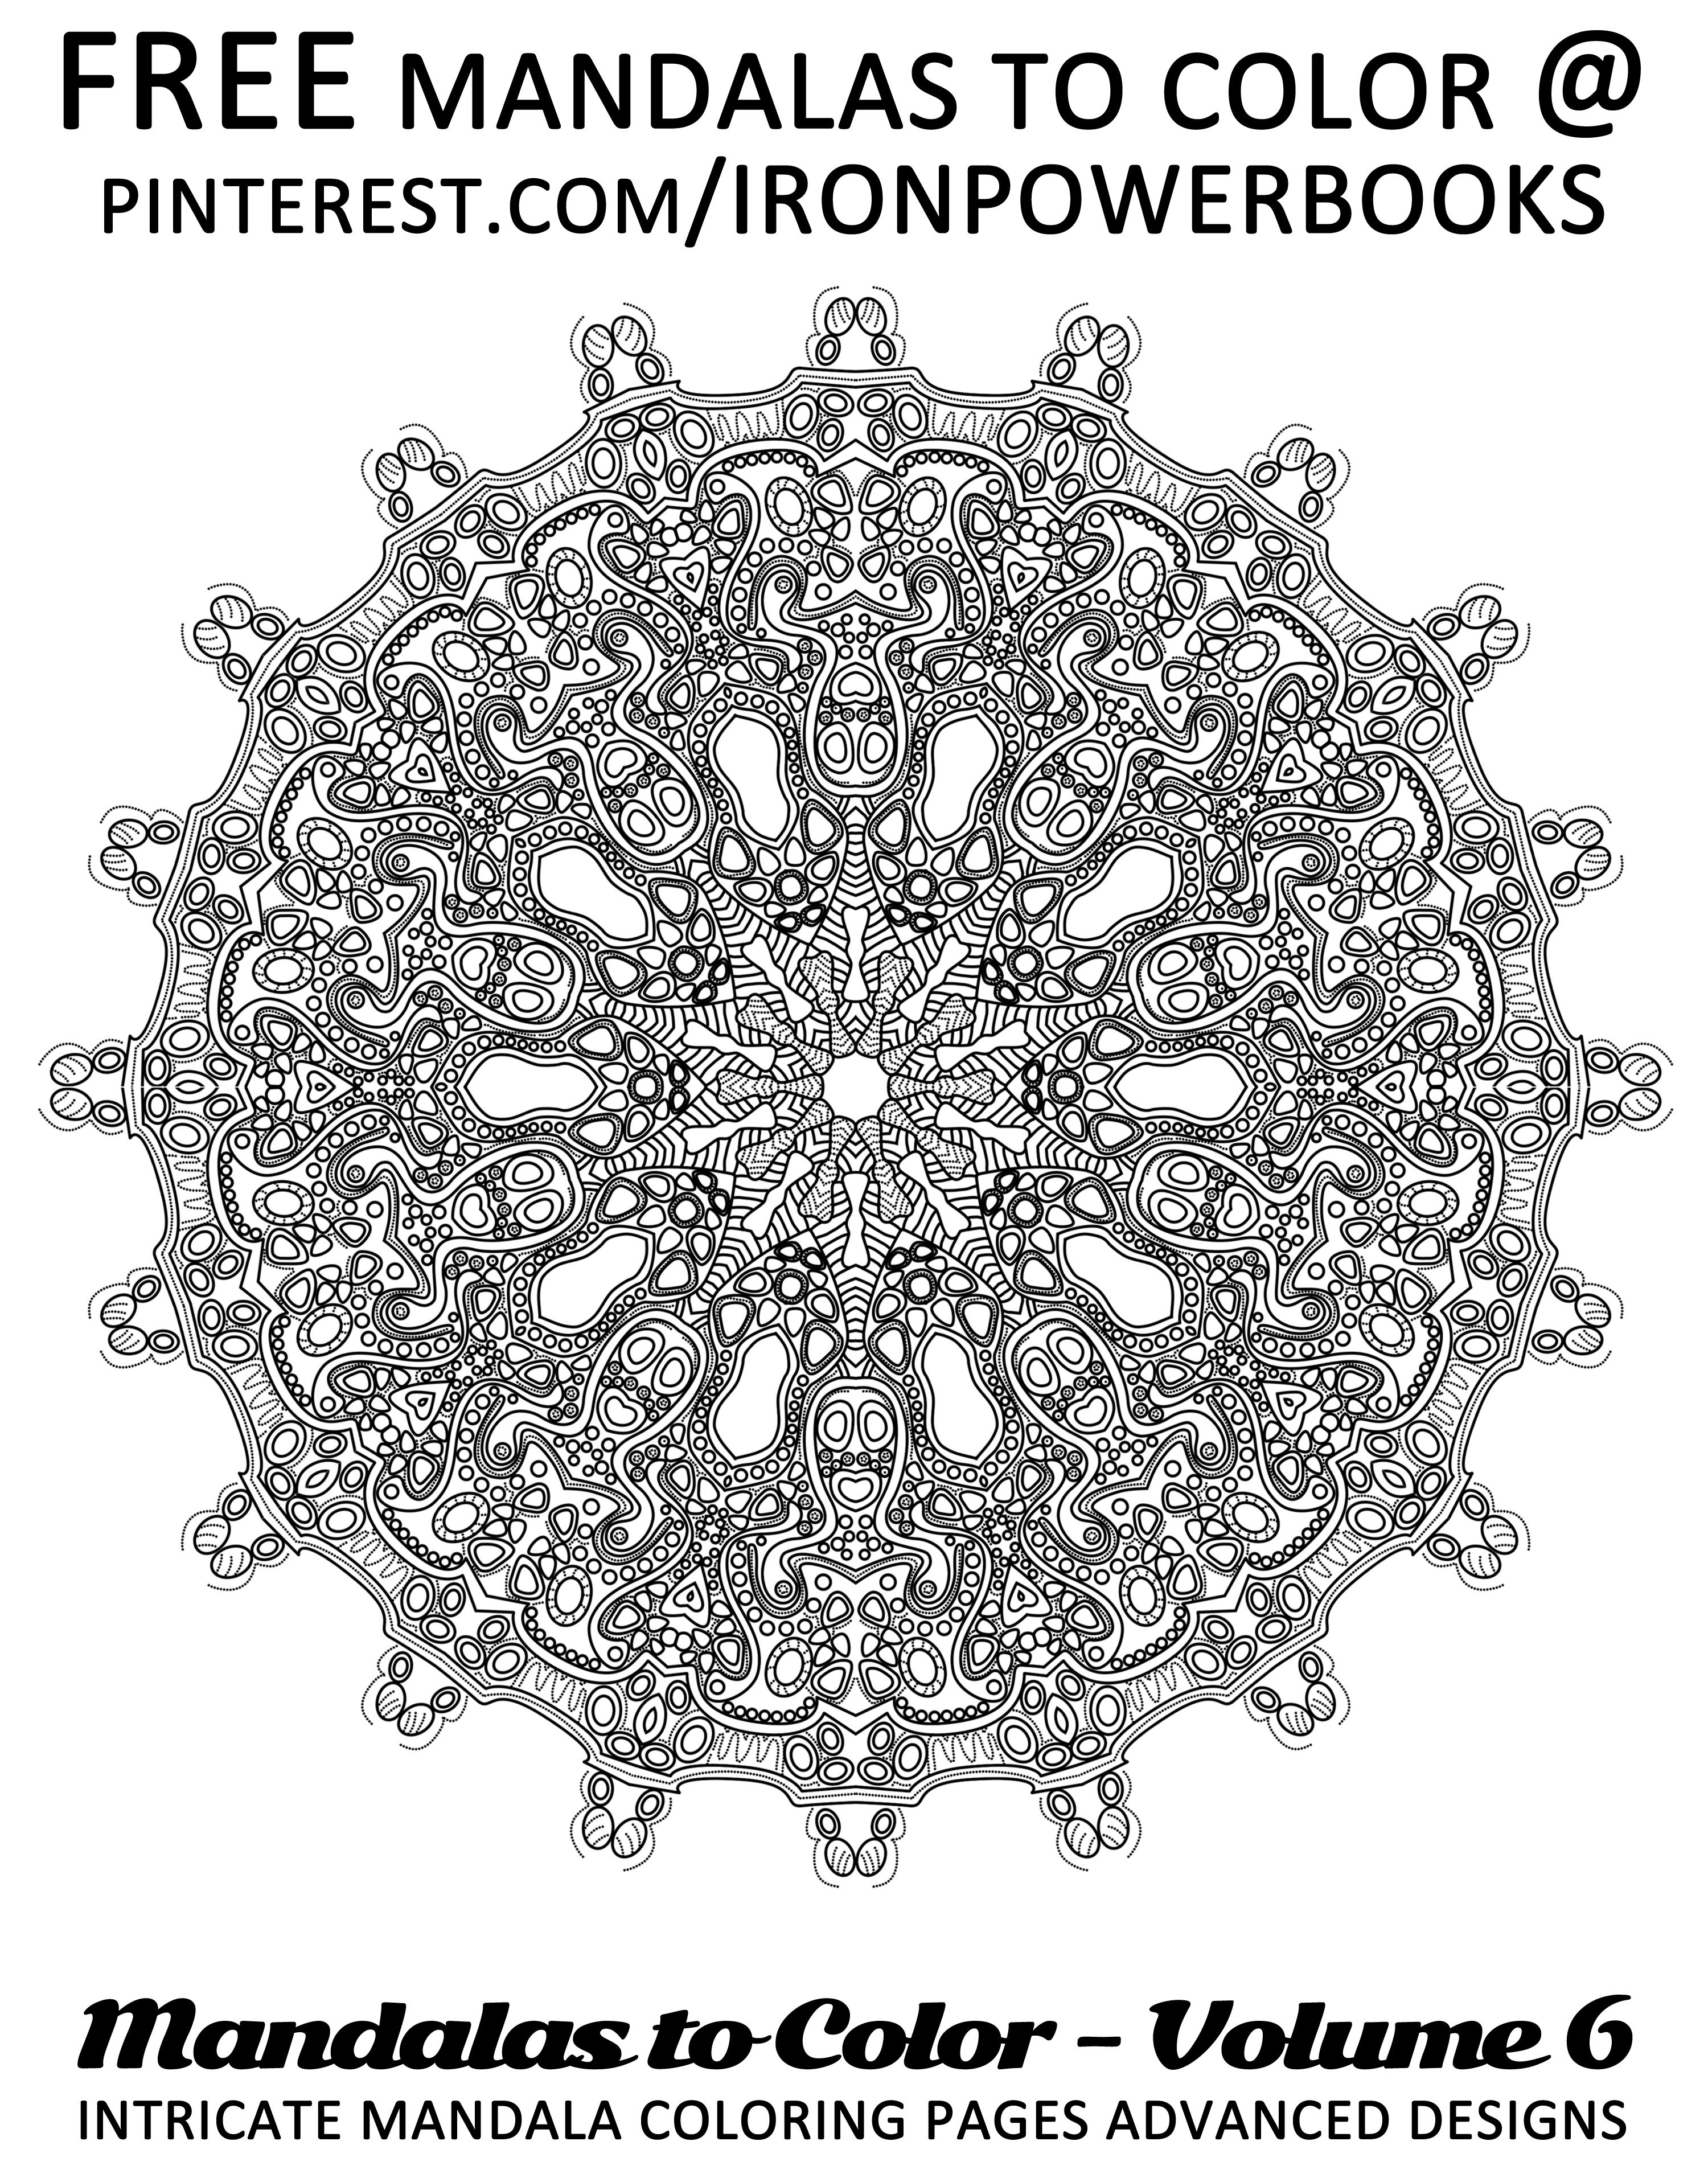 Free Mandala Design To Print And Color Click Here For 49 More Mandalas You Can Color Http W Mandala Coloring Pages Mandala Coloring Books Mandala Coloring